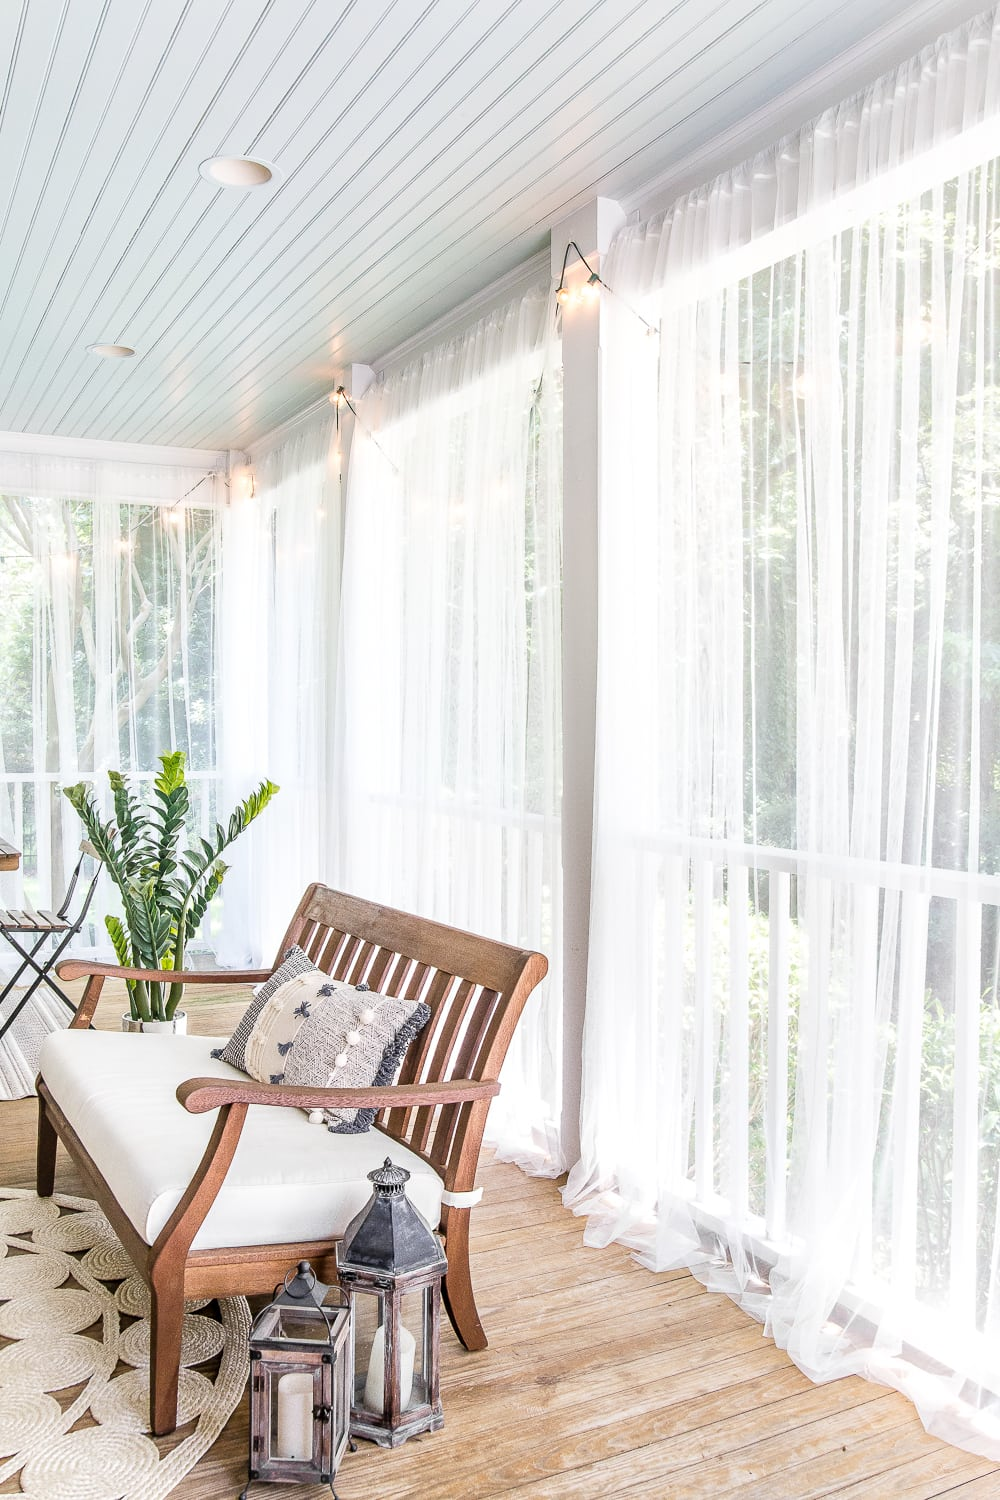 Outdoor Curtain Fabric By The Yard Diy Outdoor Curtains And Screened Porch For Under 100 Bless Er